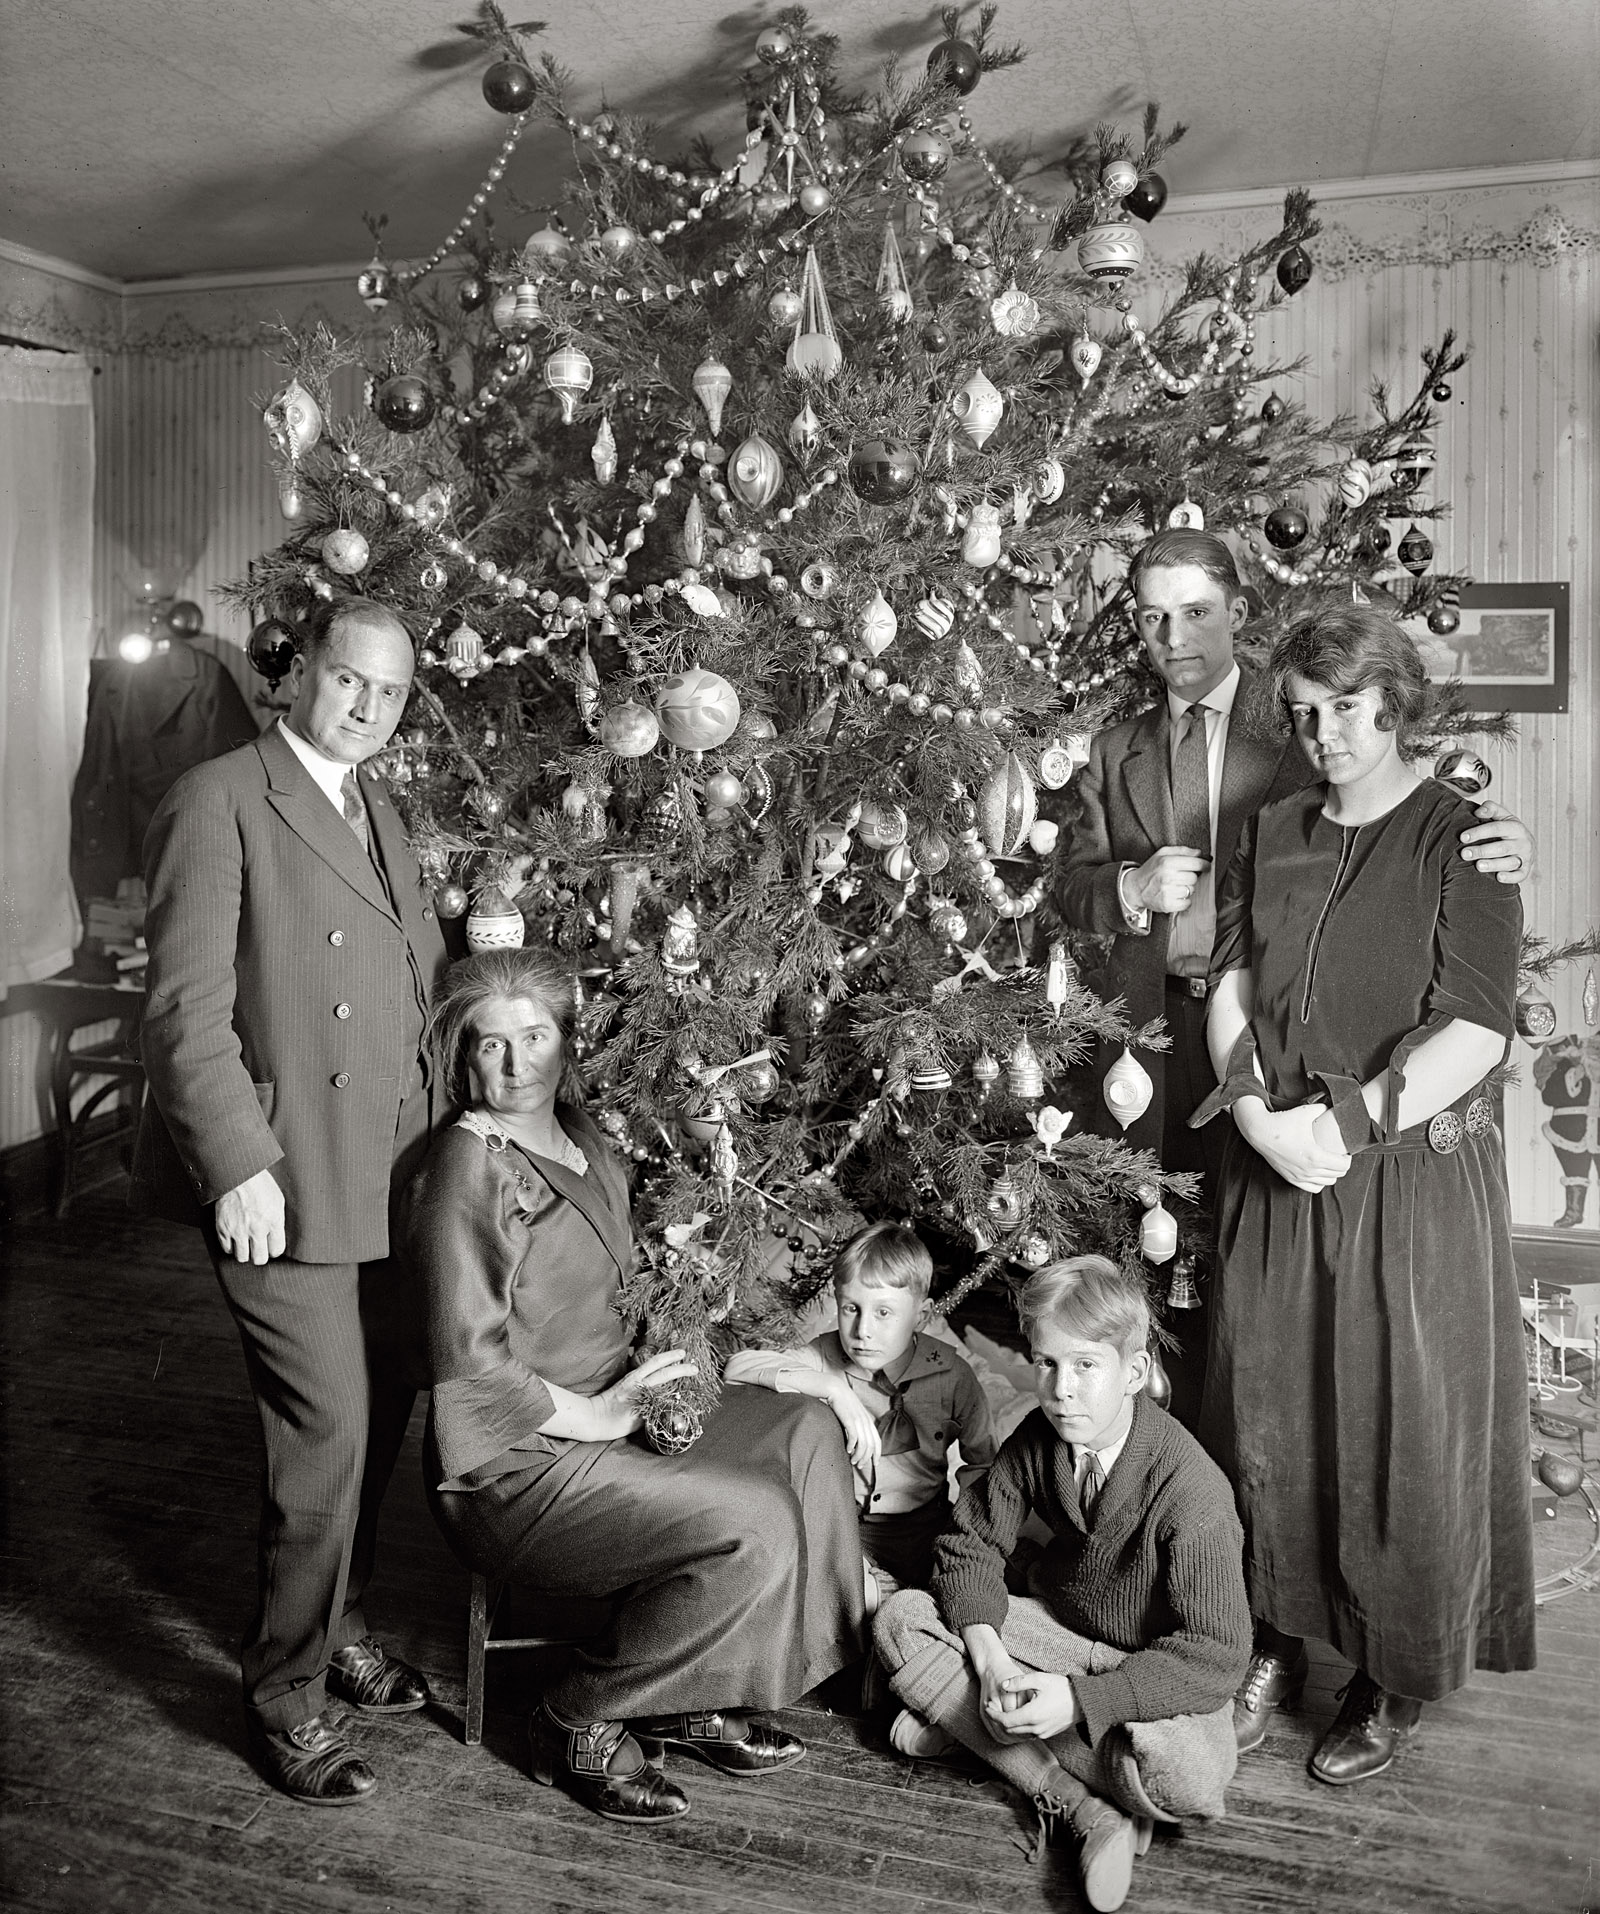 Lucy And Desi Arnaz Vintage Christmas Photos From The 1920s